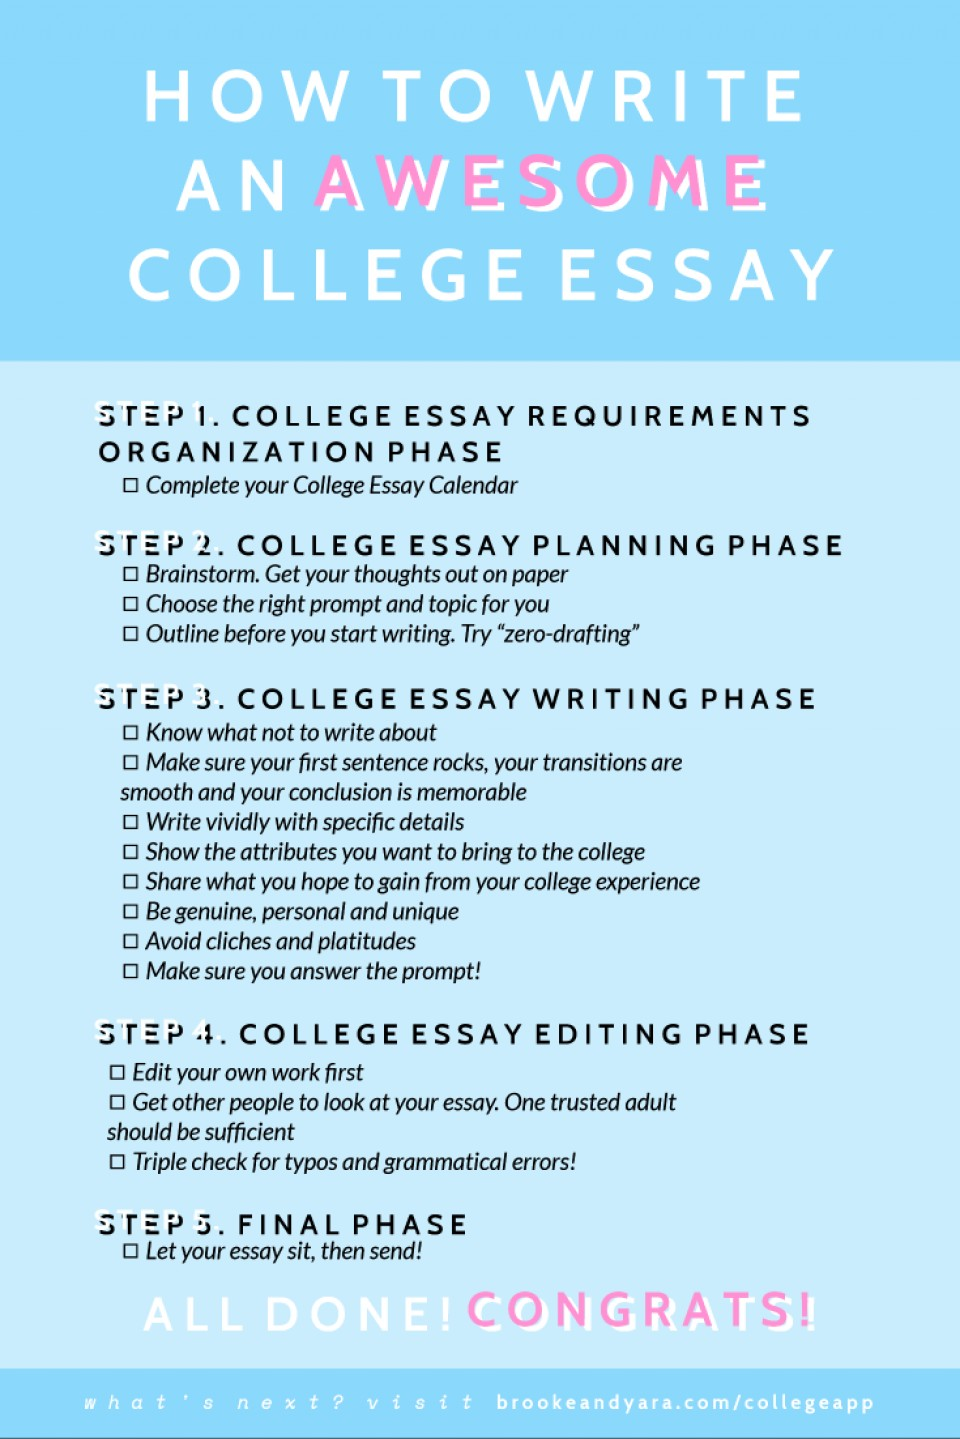 014 2336170977 Personal College Essays Example Stirring Essay Prompt Samples Best Prompts 2017 Uc 960